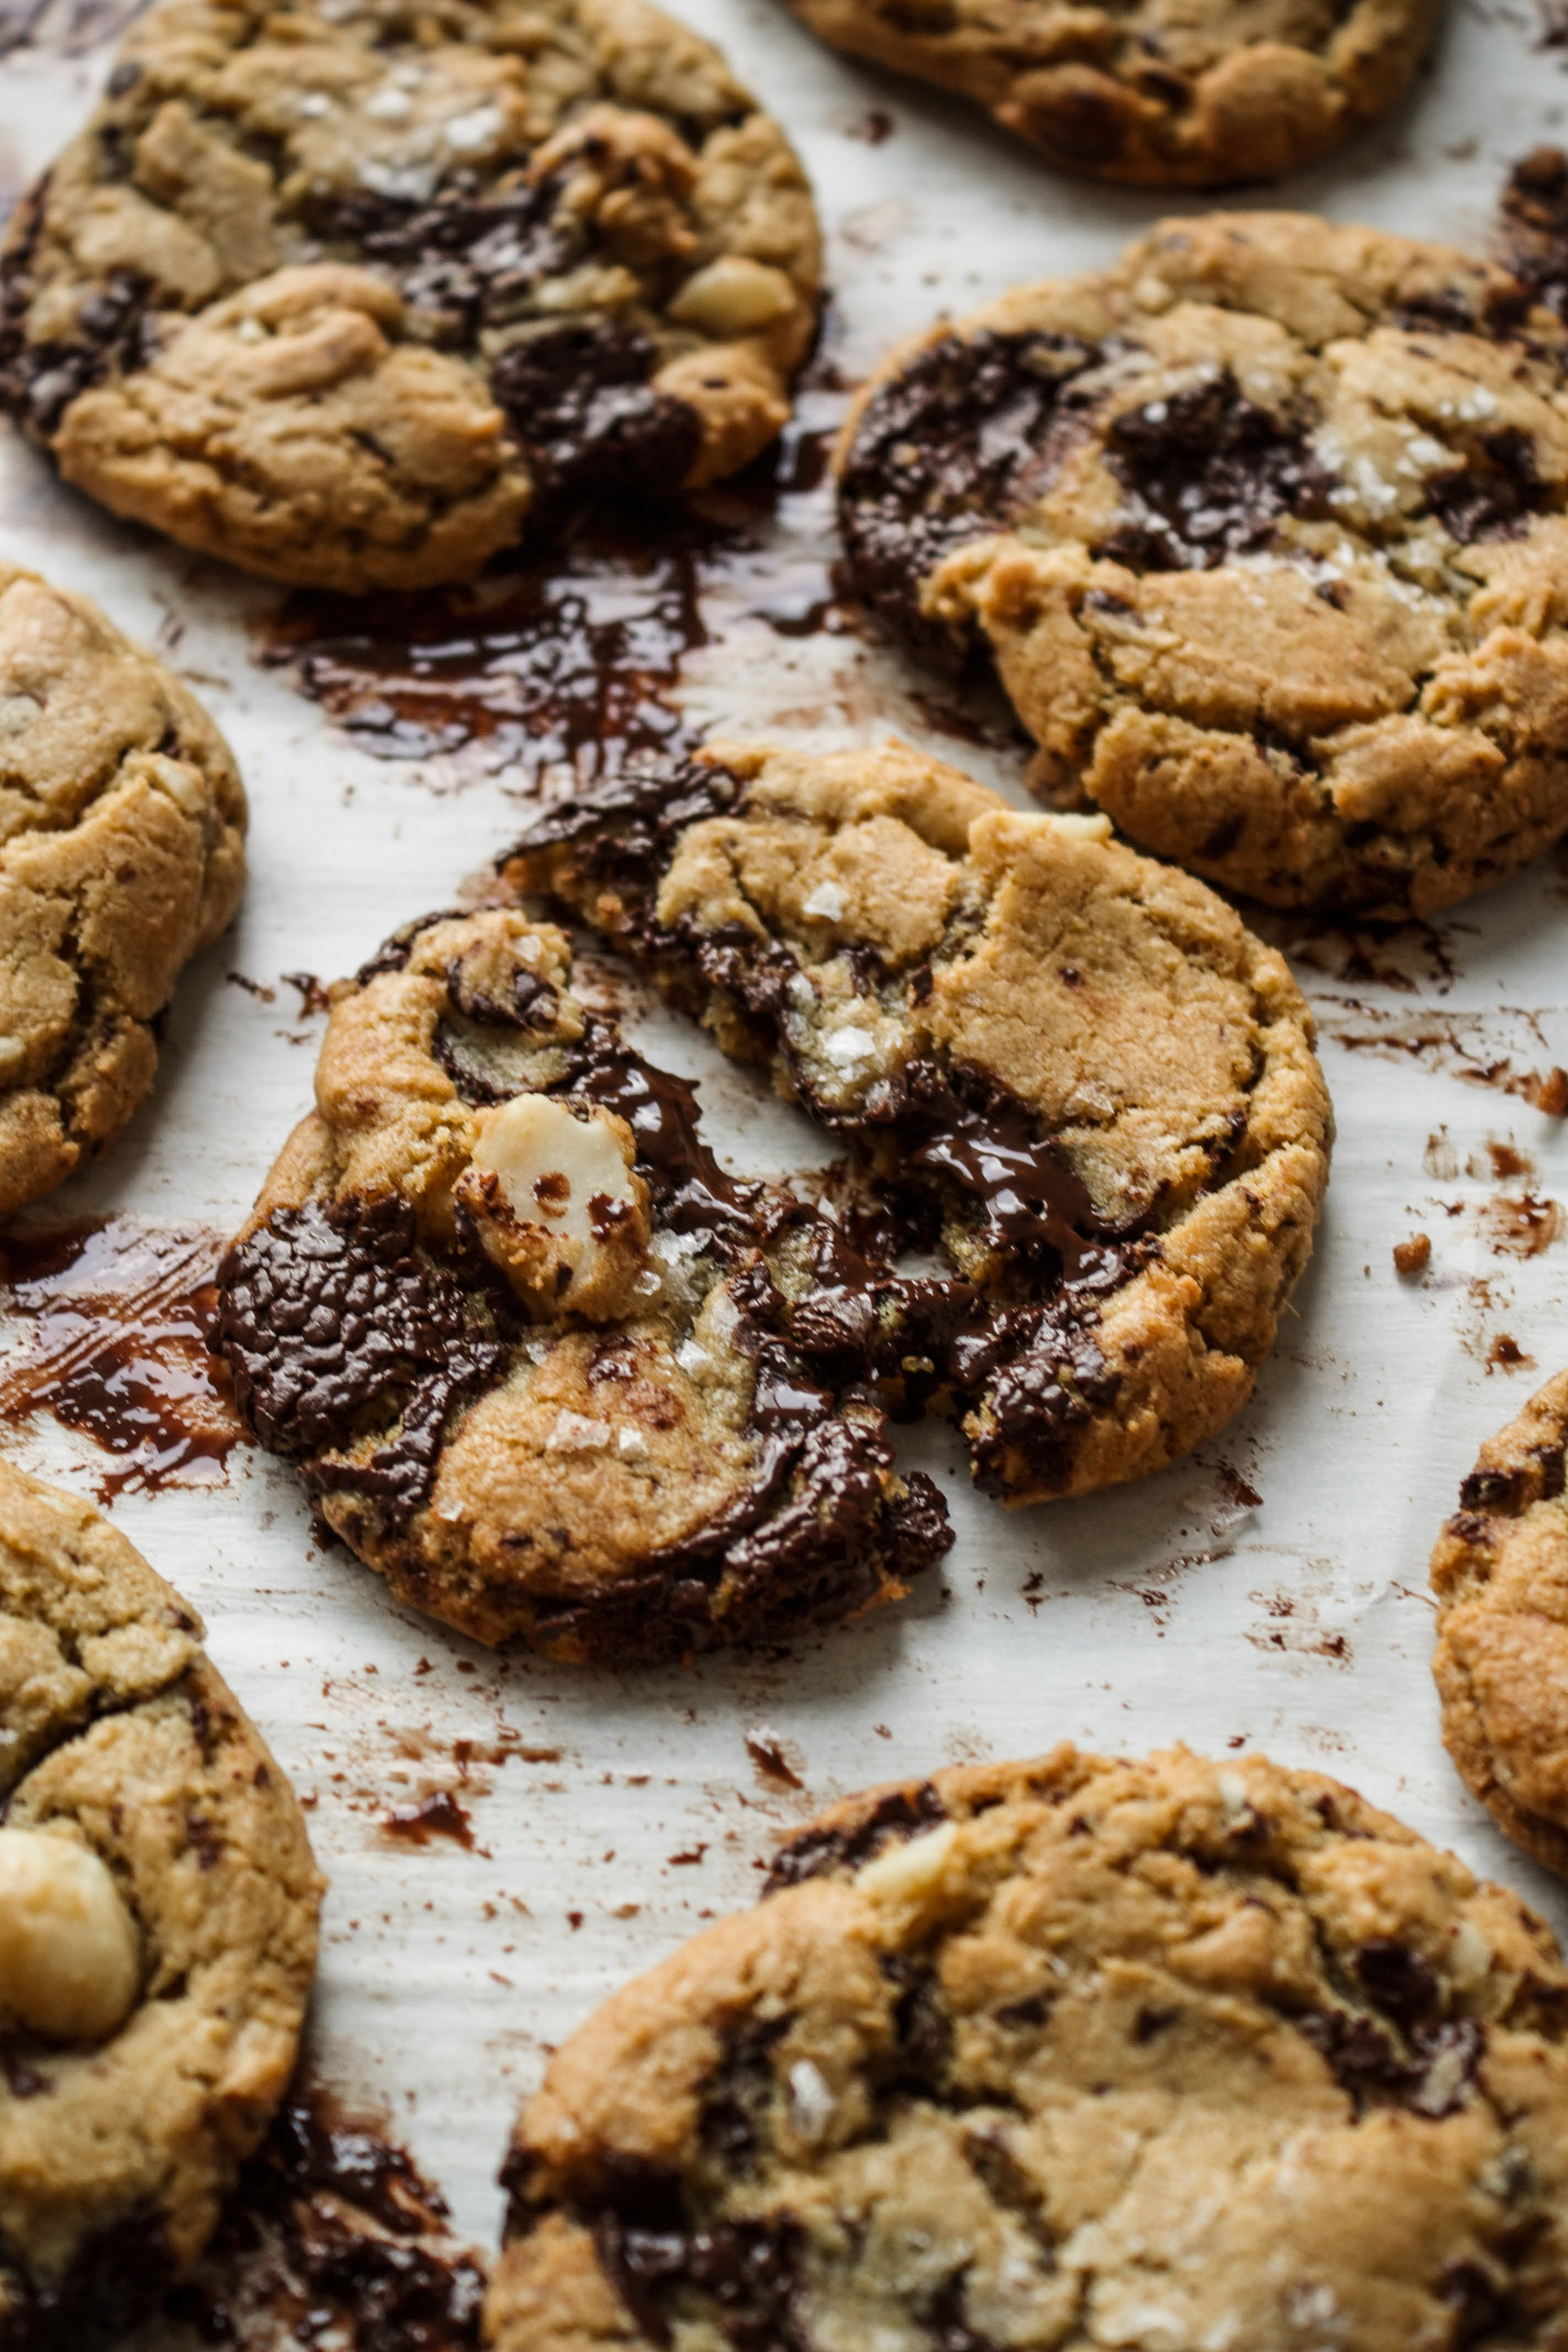 Chocolate chip macadamia cookies 10.jpg